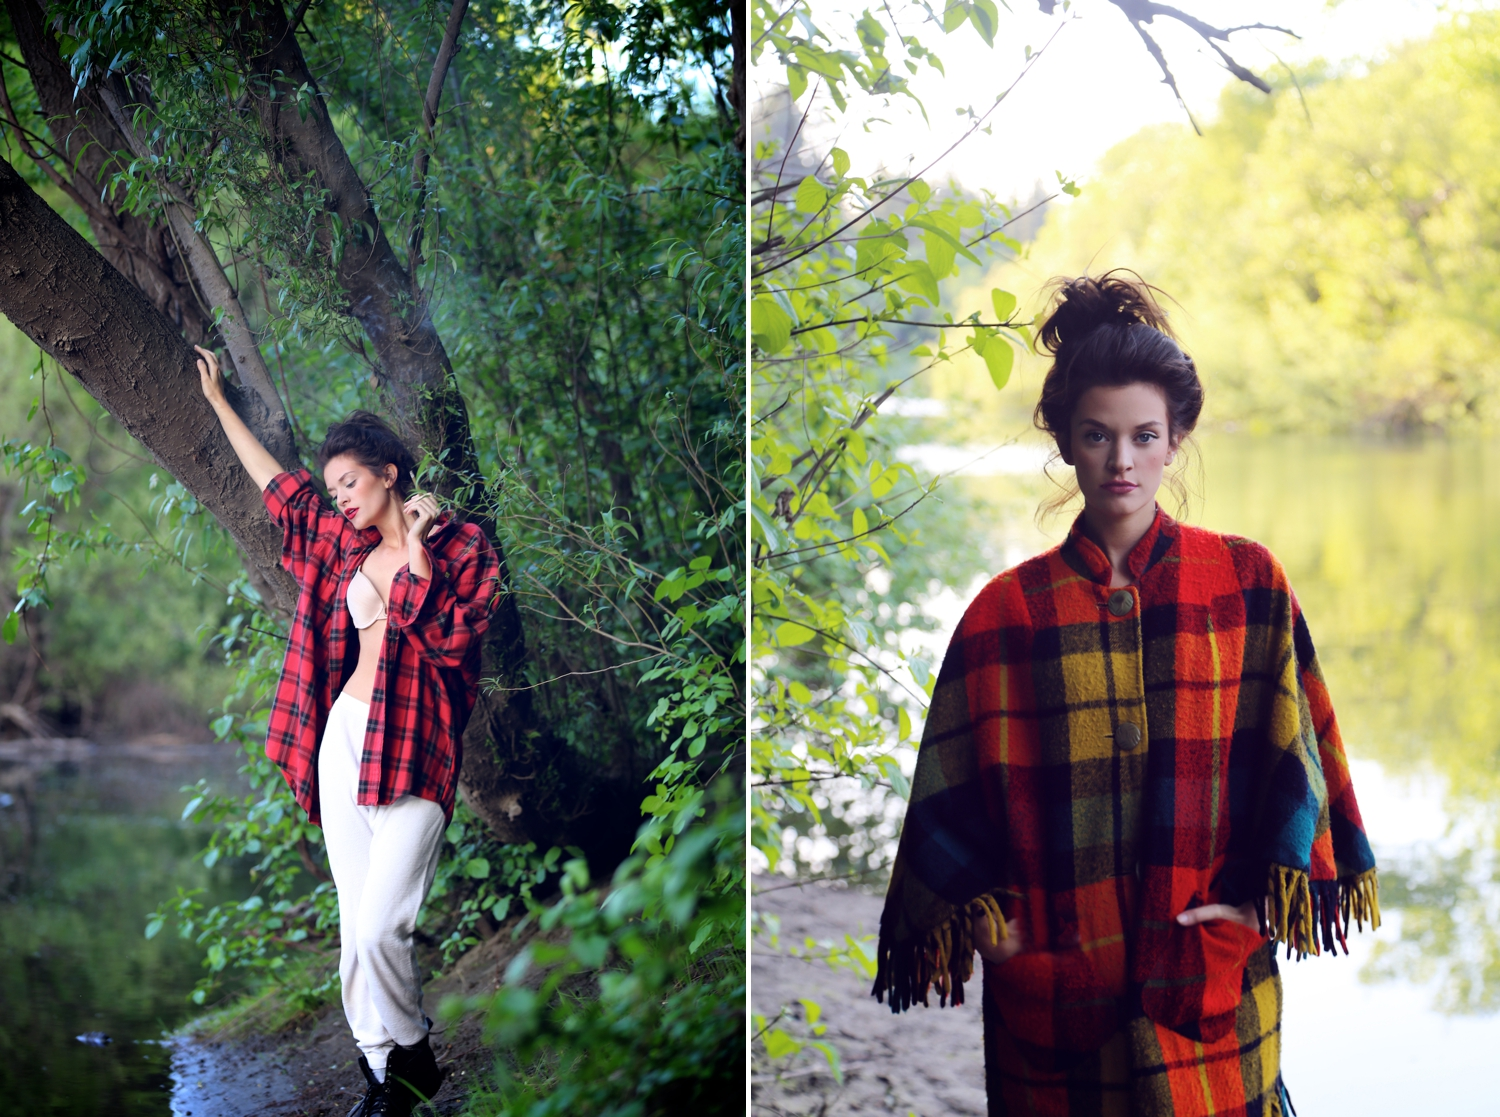 Russian-River-Travel-Editorial, russian river, fashion editorial, fall fashion, plaids, tartan, fashion blogger, heather van gaale, travel blog, fashion blog, fashion photographer orange county,